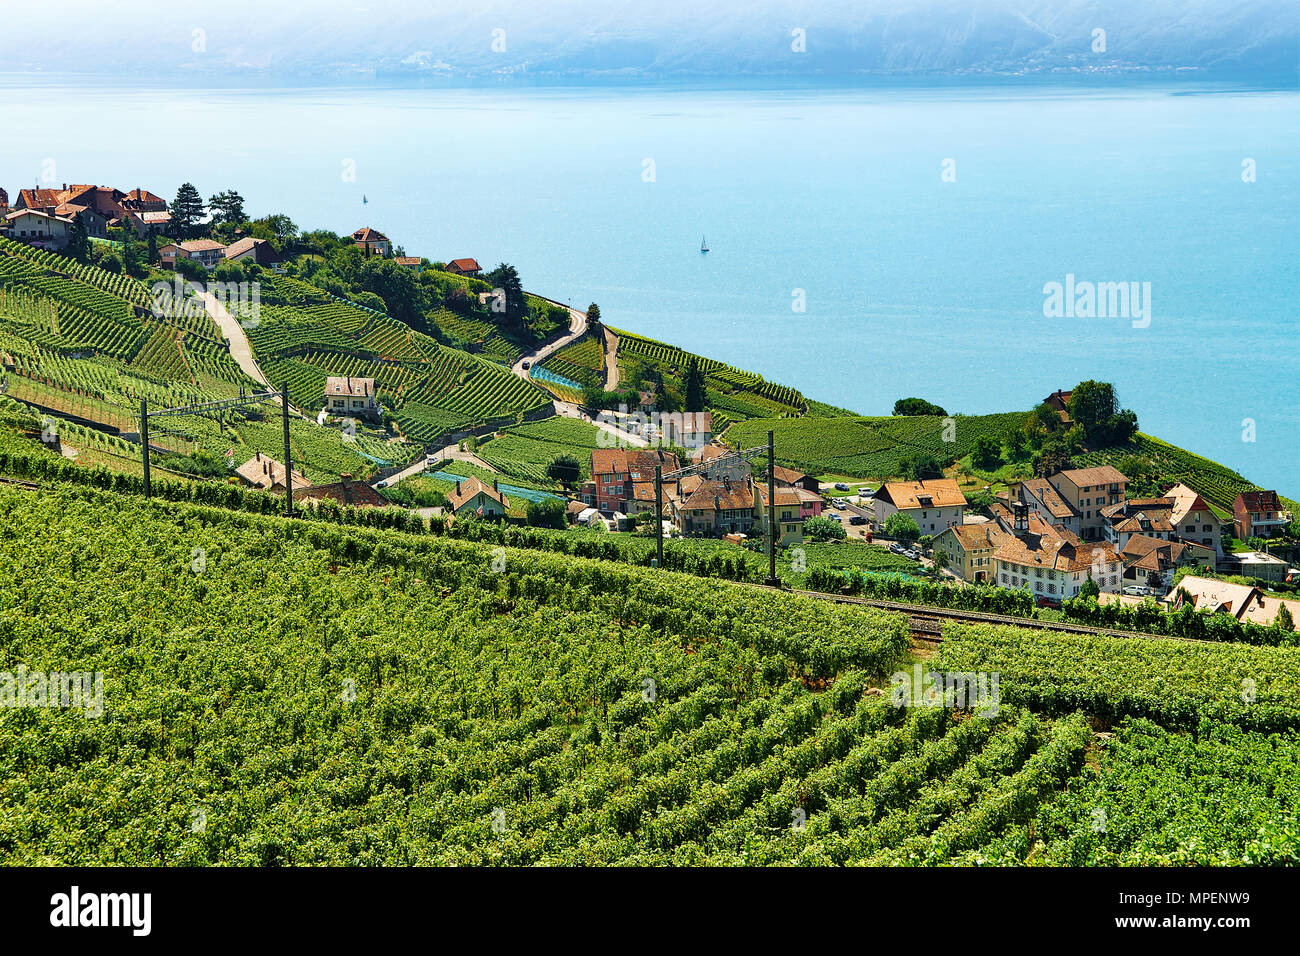 Lavaux, Switzerland - August 30, 2016: Railway line, Lavaux Vineyard Terraces hiking trail, Lake Geneva and Swiss mountains, Lavaux-Oron district, Swi - Stock Image